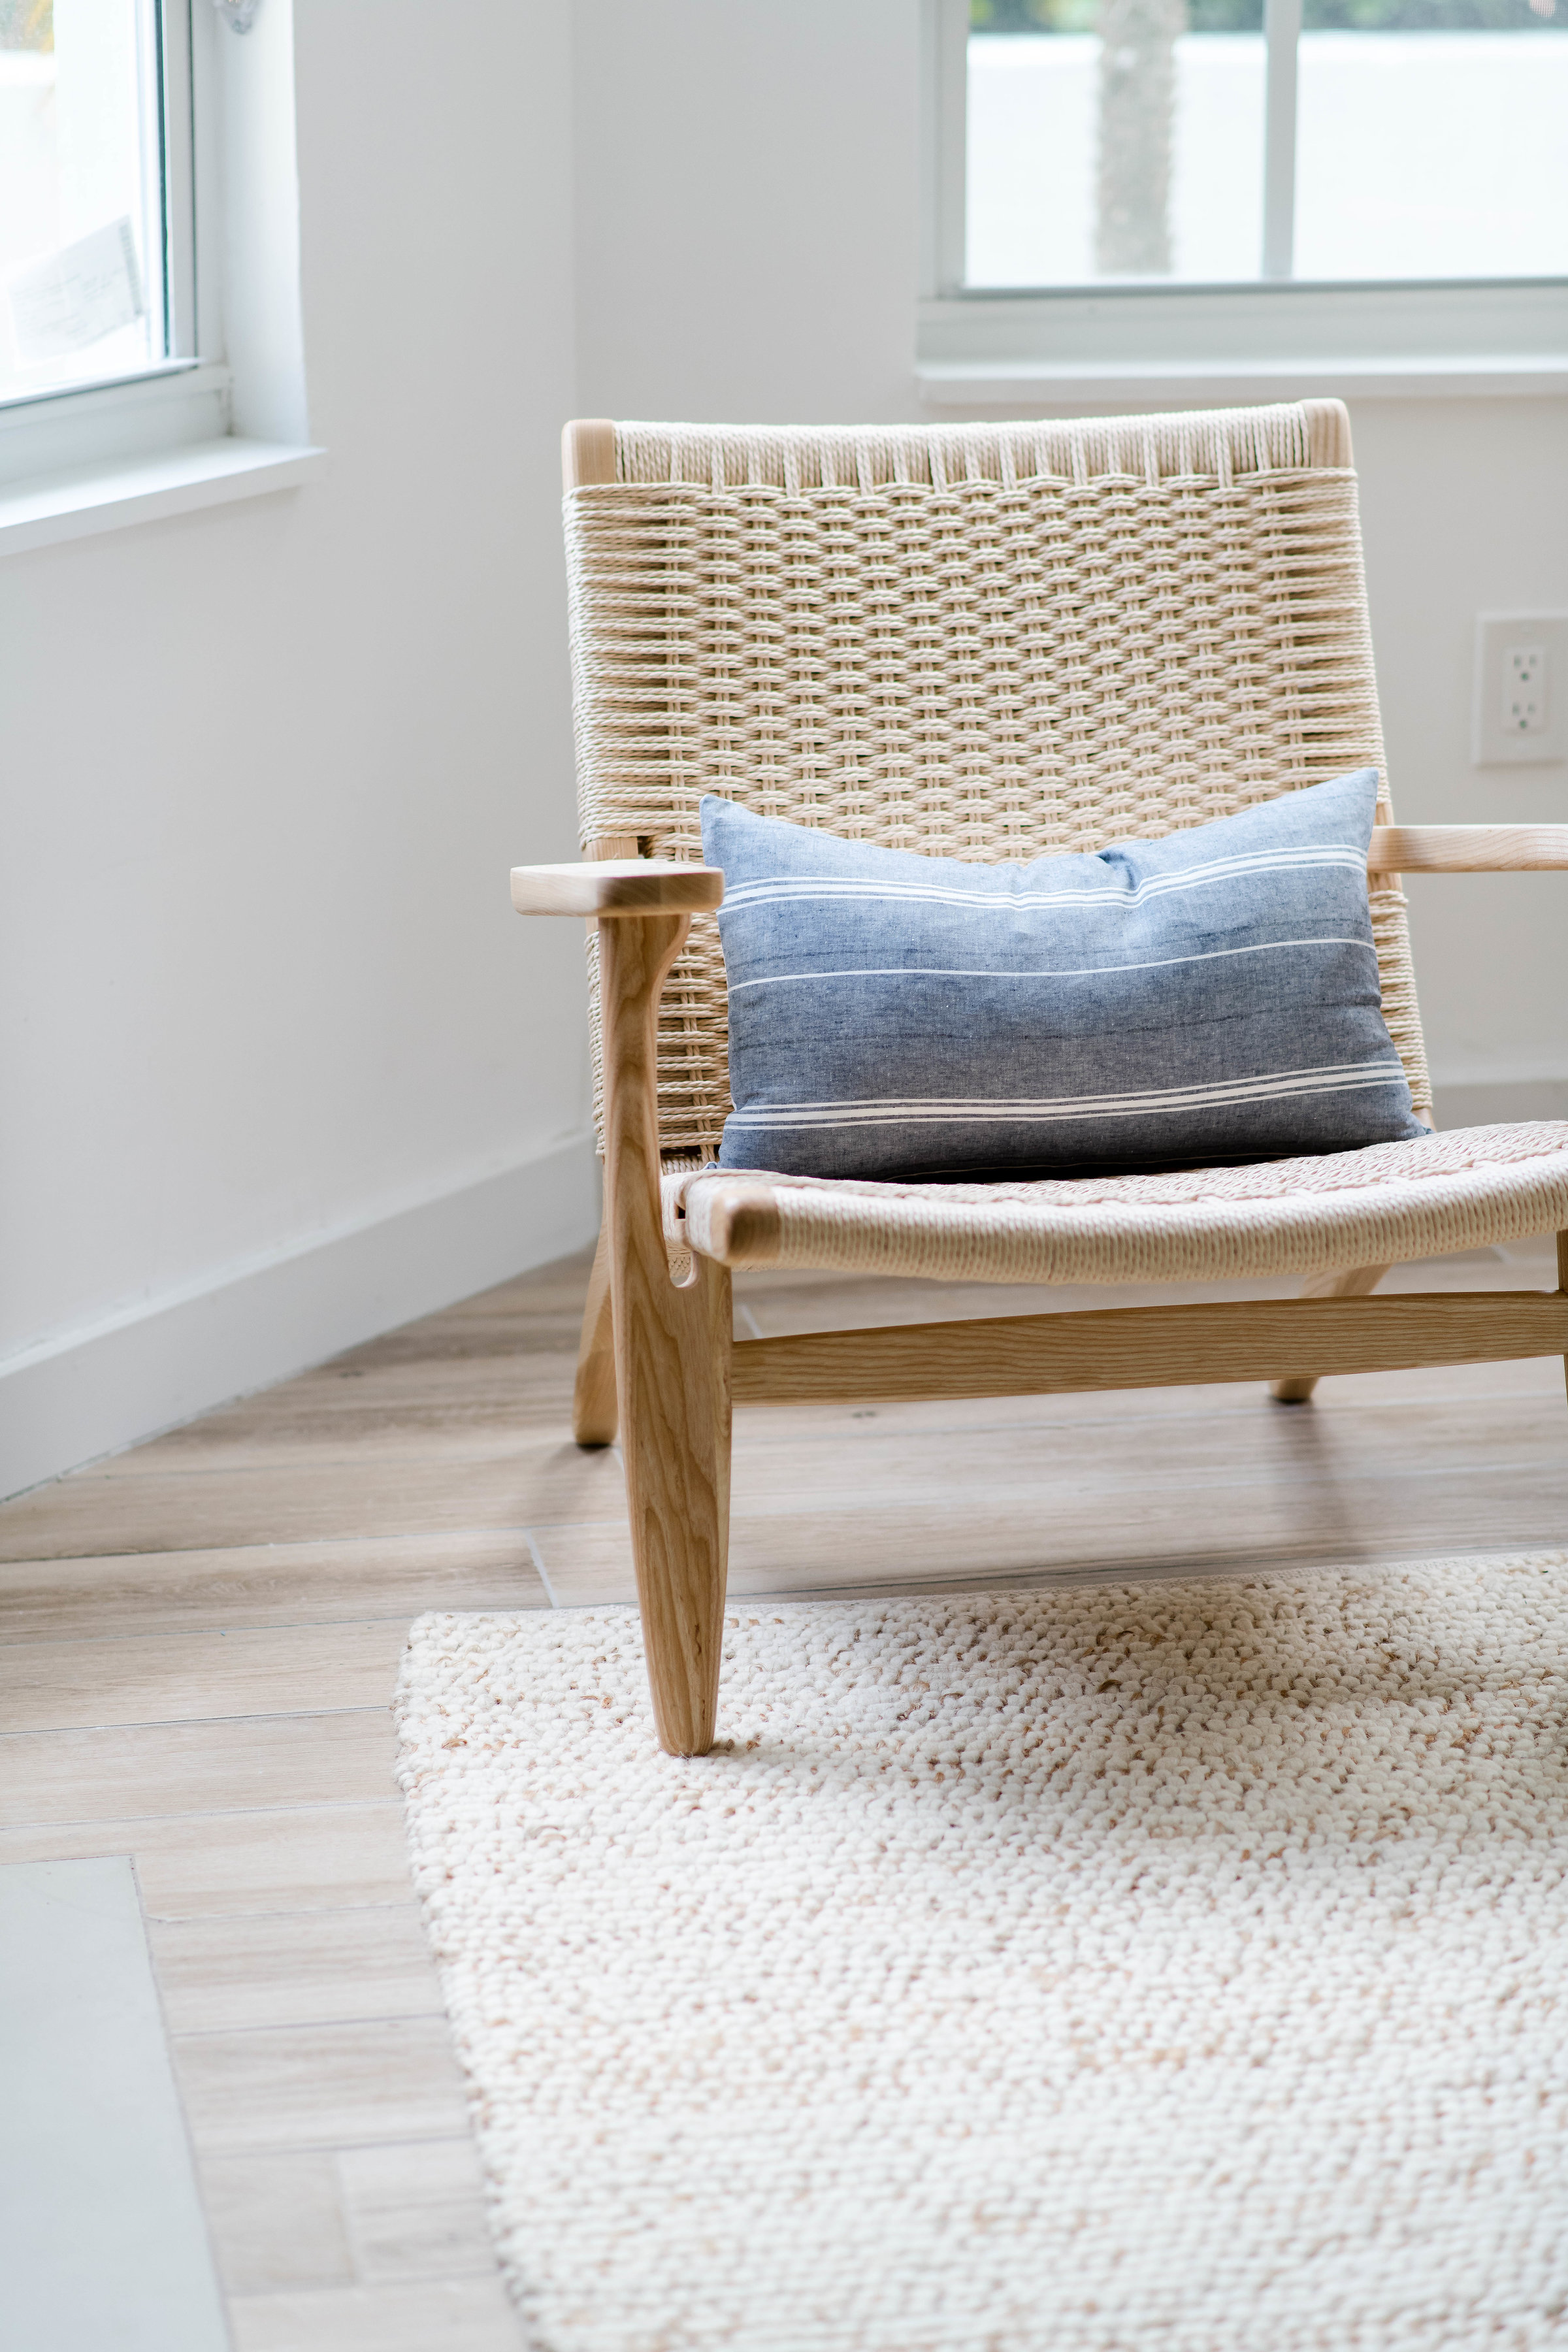 woven accent chairs - the habitat collective interior design - #projectpeachy